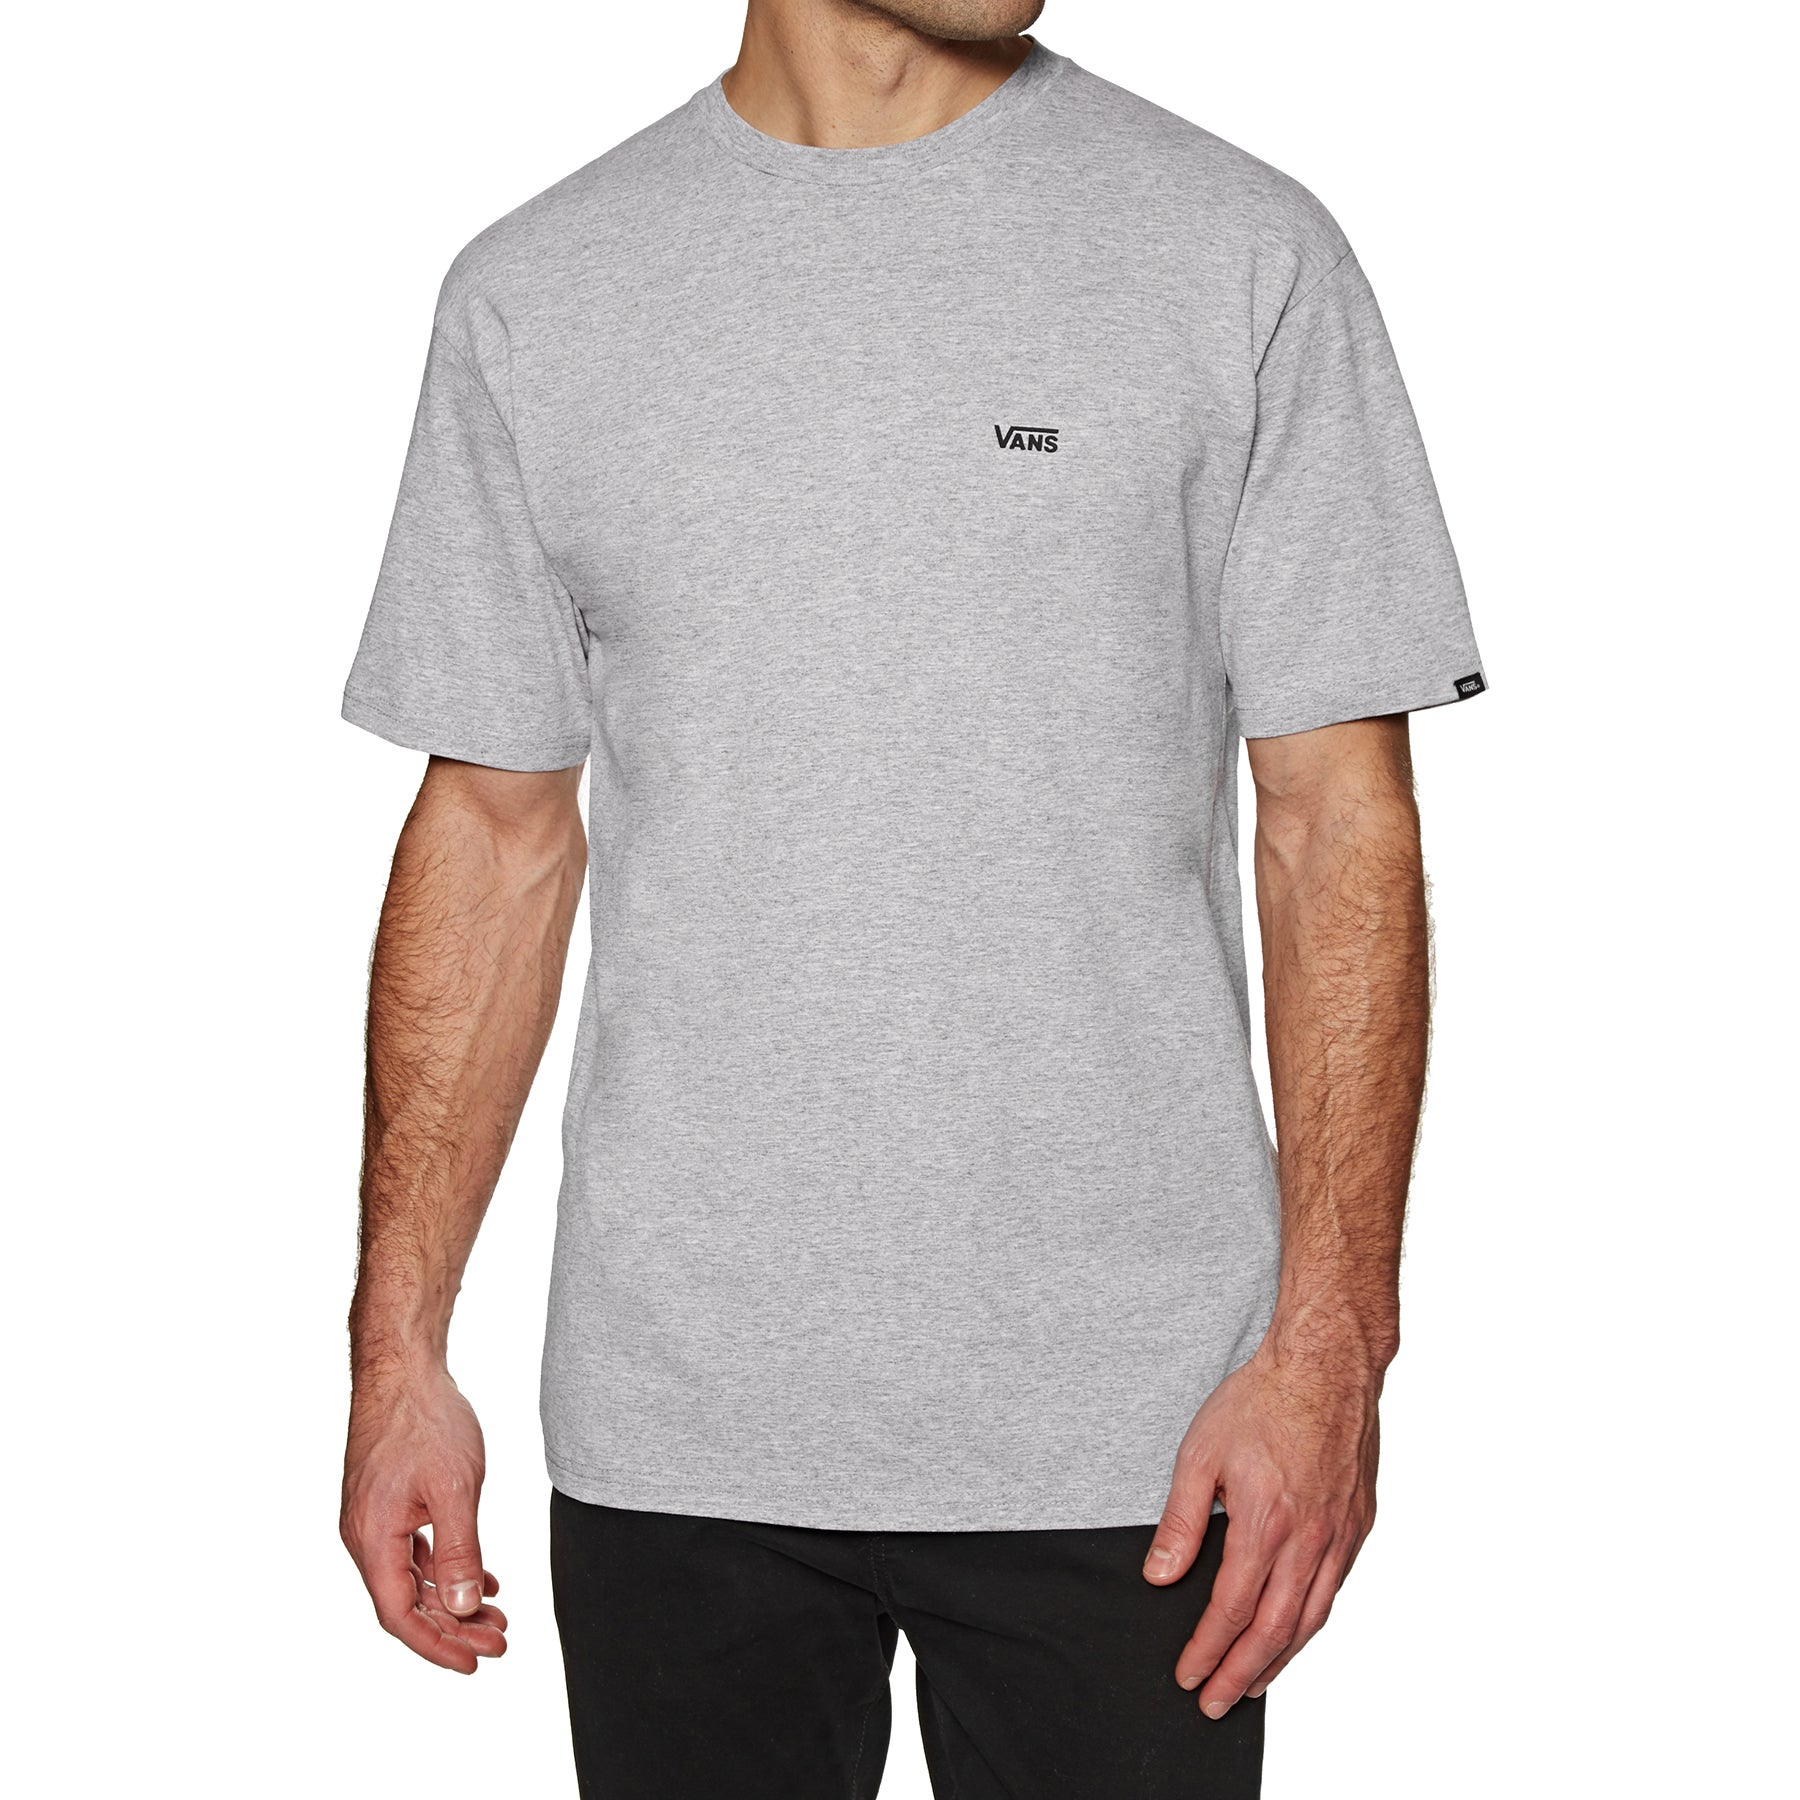 Vans Left Chest Logo Short Sleeve T-Shirt - Athletic Heather